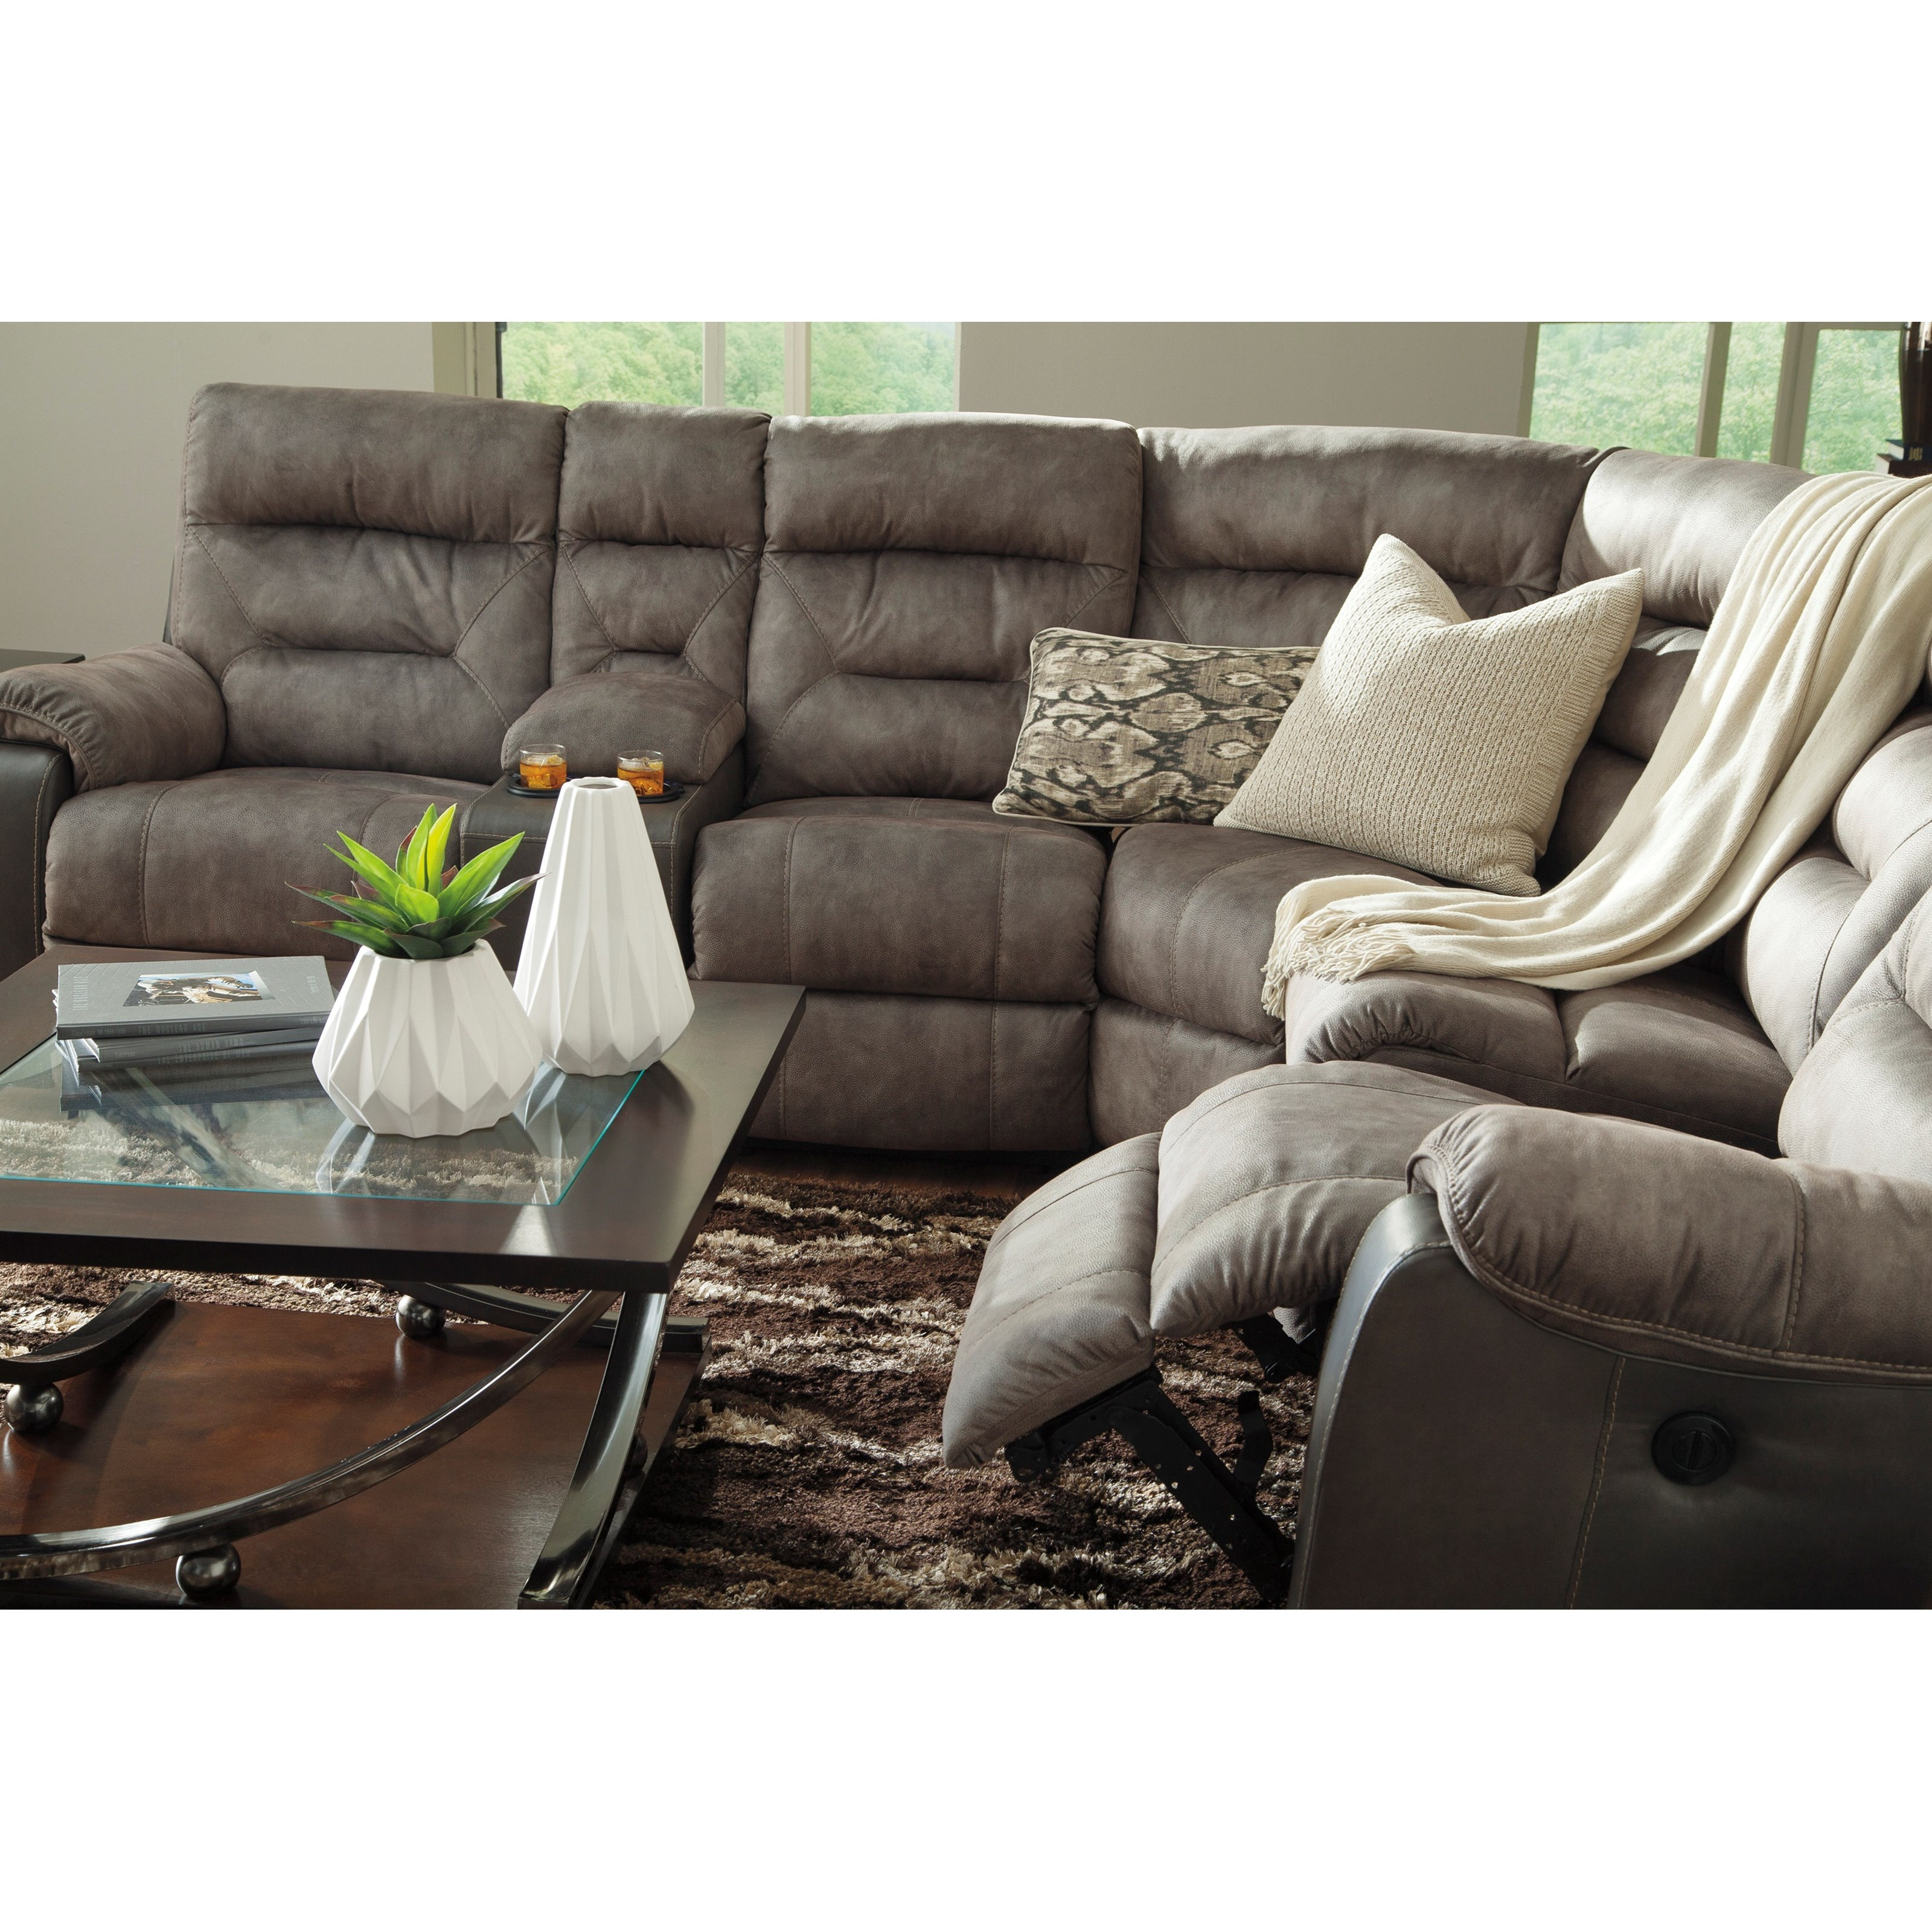 Benchcraft Hacklesbury Two Tone Reclining Sectional With